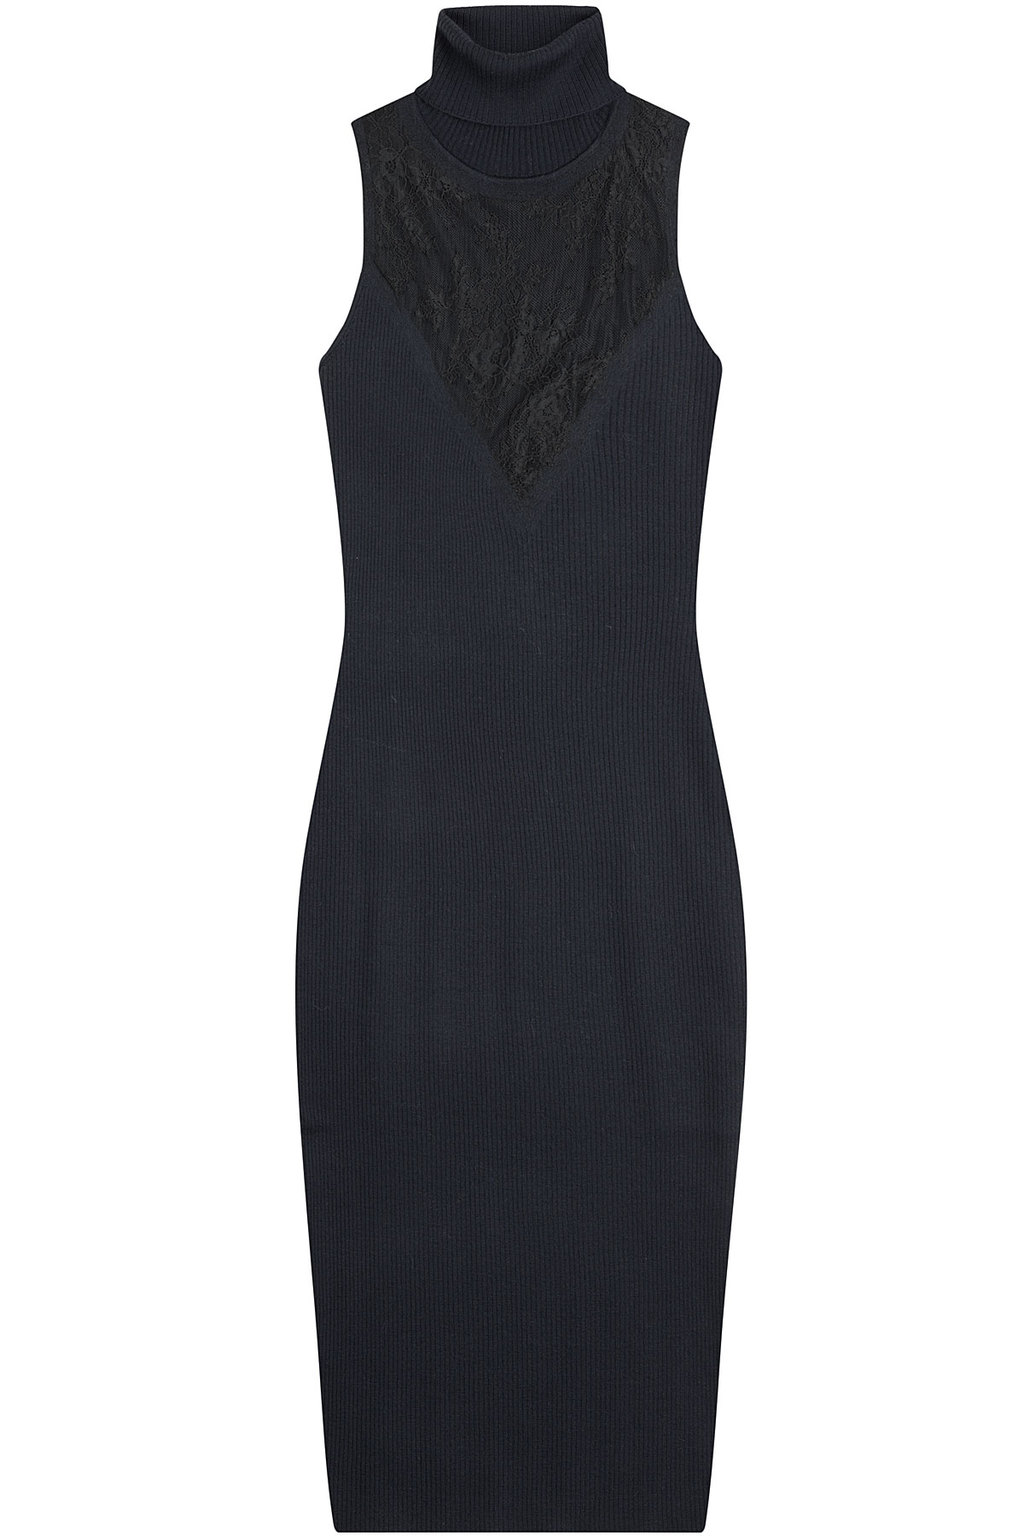 Sleeveless Wool Dress With Lace - style: jumper dress; length: below the knee; fit: tight; pattern: plain; sleeve style: sleeveless; neckline: roll neck; predominant colour: navy; secondary colour: black; fibres: wool - mix; sleeve length: sleeveless; texture group: knits/crochet; pattern type: knitted - other; embellishment: lace; occasions: creative work; season: a/w 2015; wardrobe: highlight; embellishment location: bust